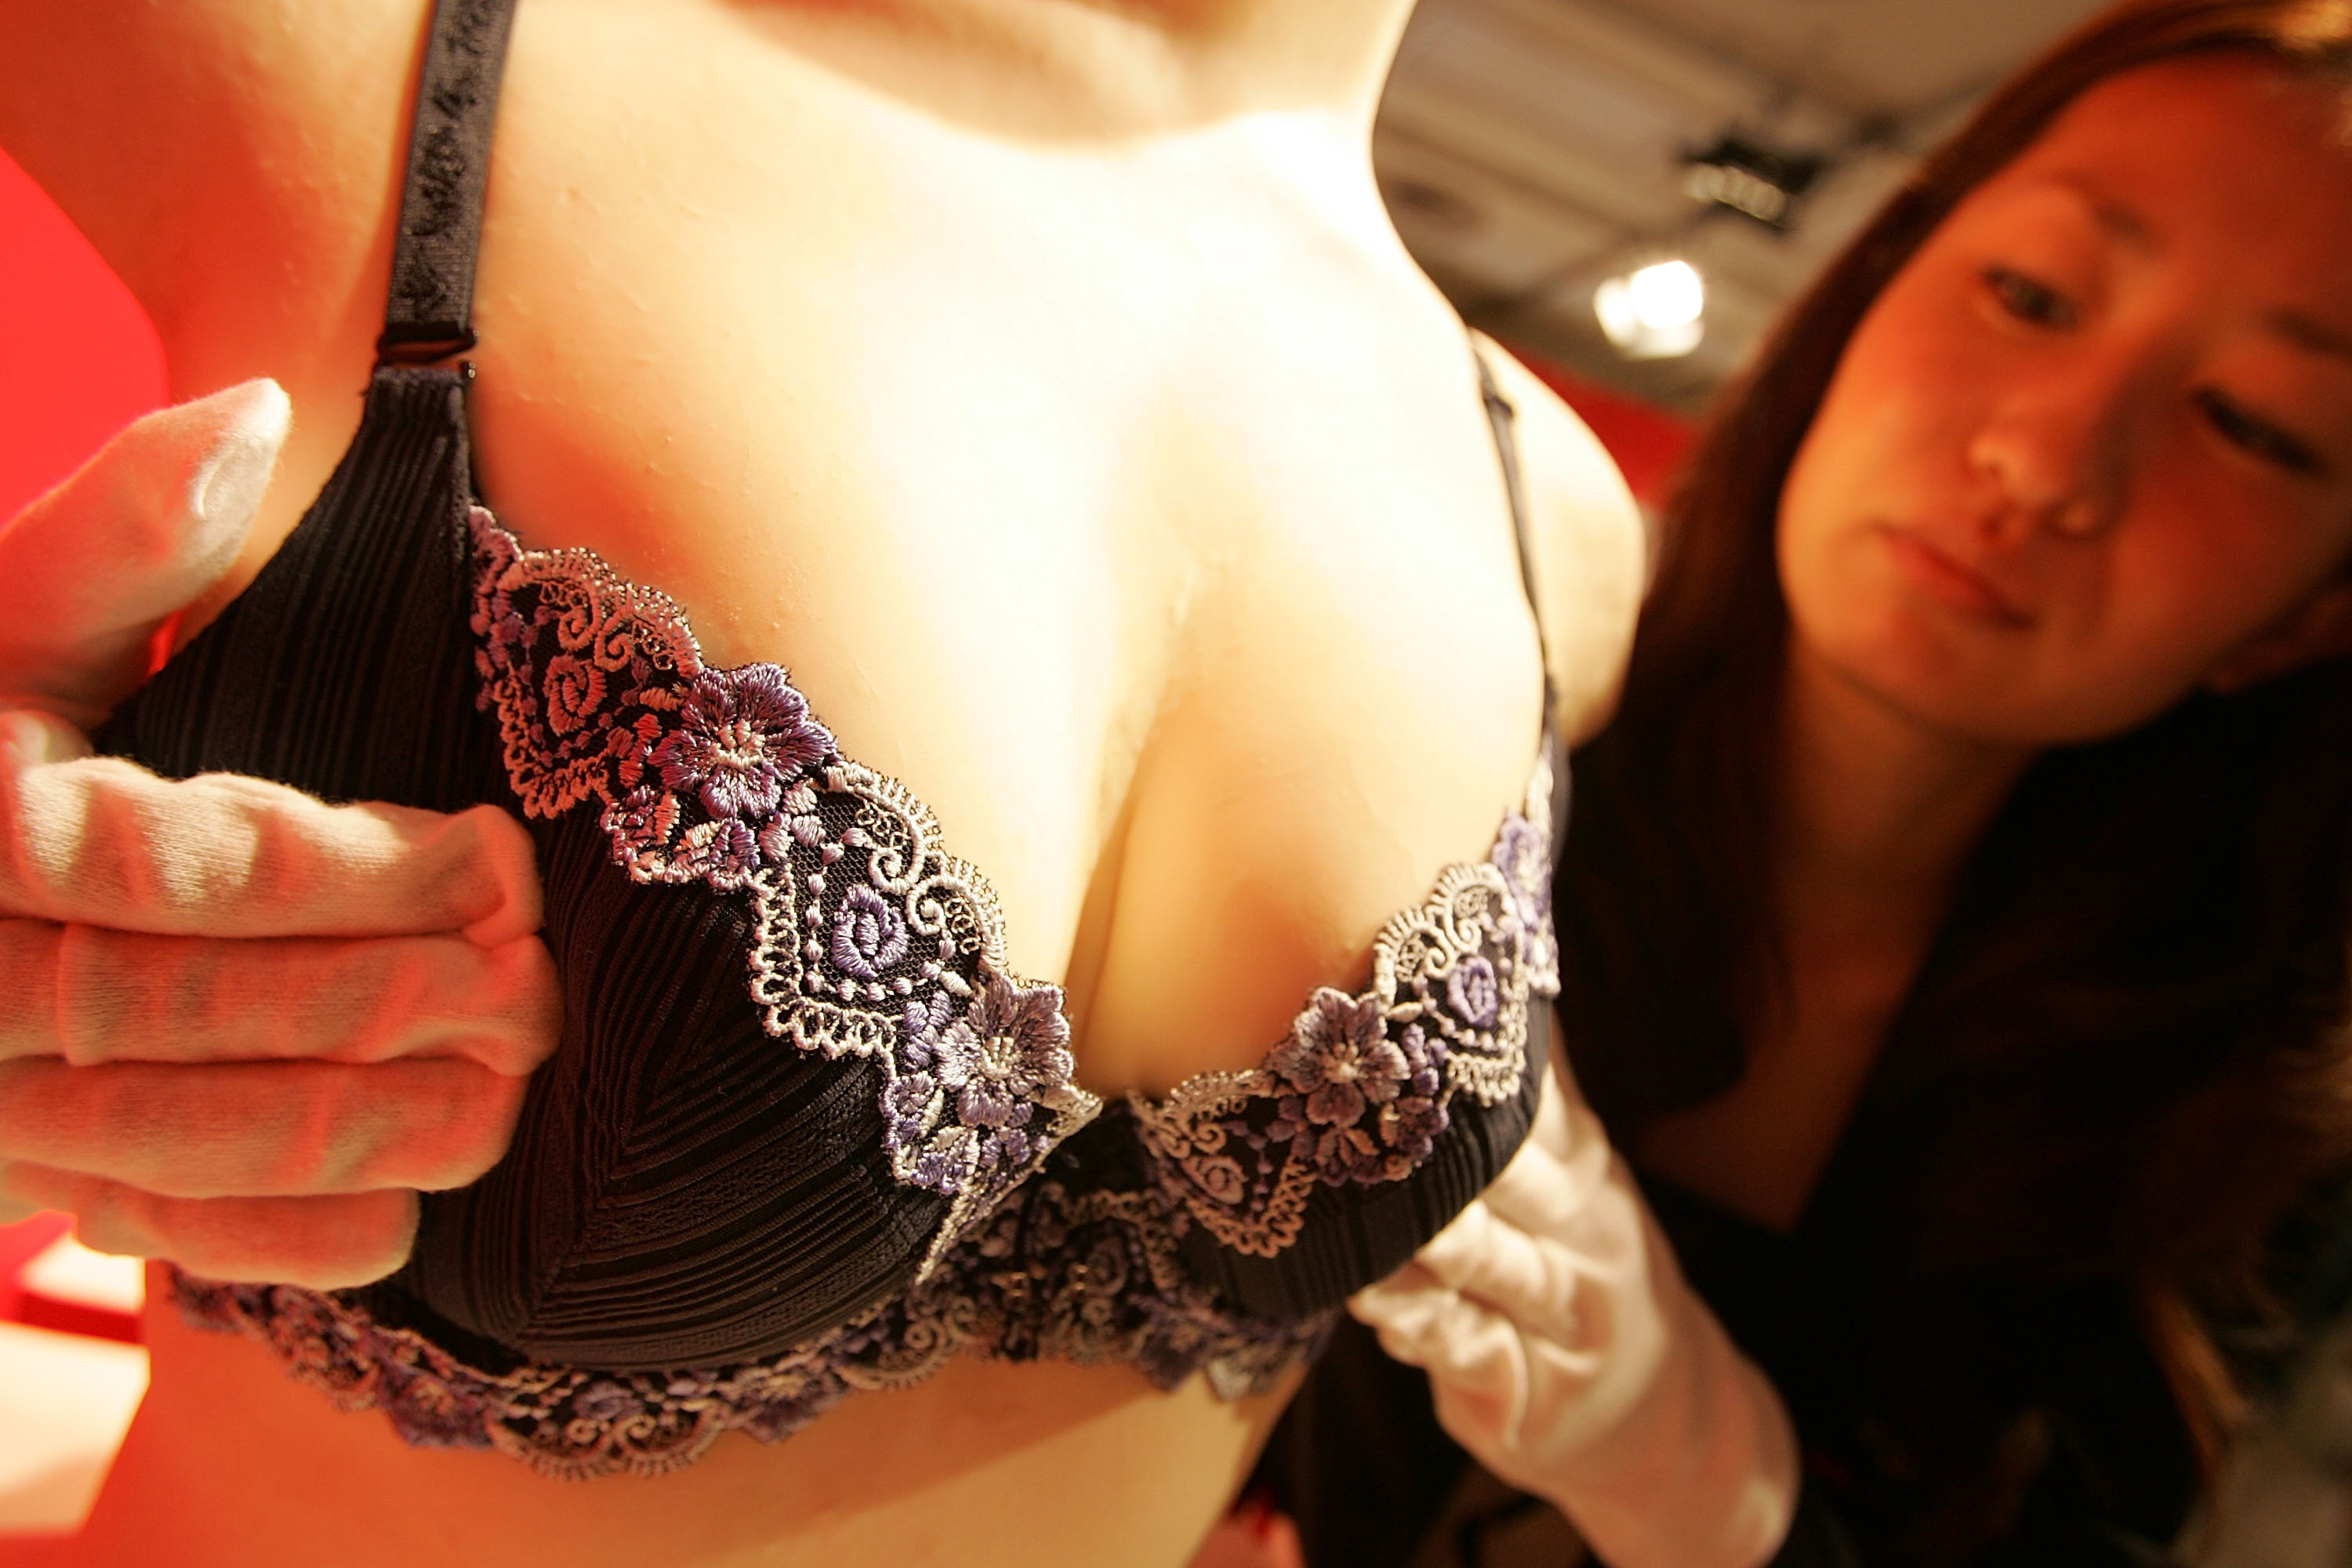 5980a028ea Bra Retailer Brayola Is Helping Women Find the Perfect Bra by Showing What  Products Look Like on REAL Women